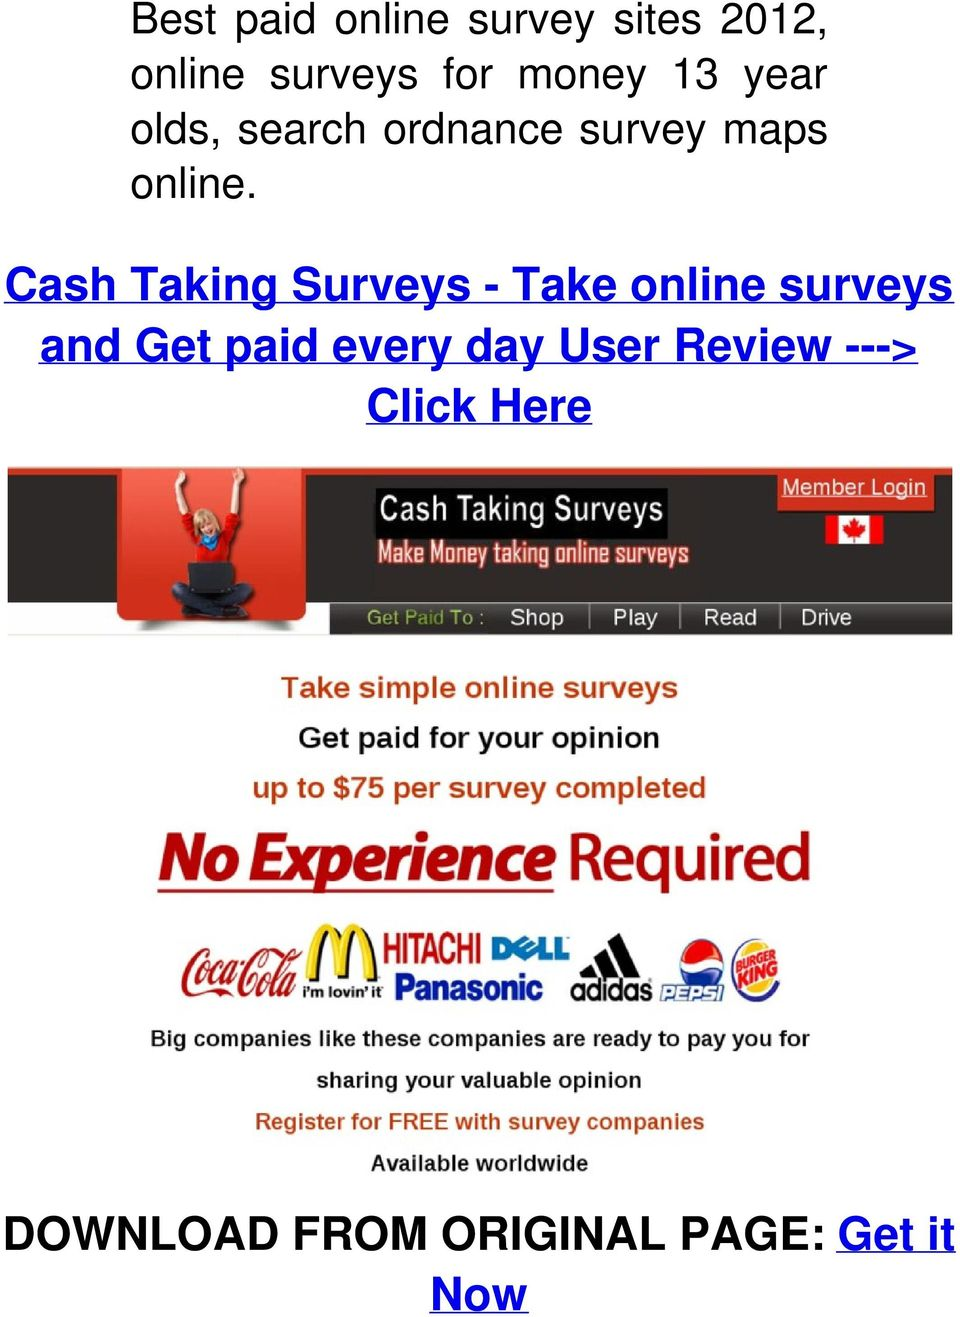 Cash Taking Surveys - Take online surveys and Get paid every